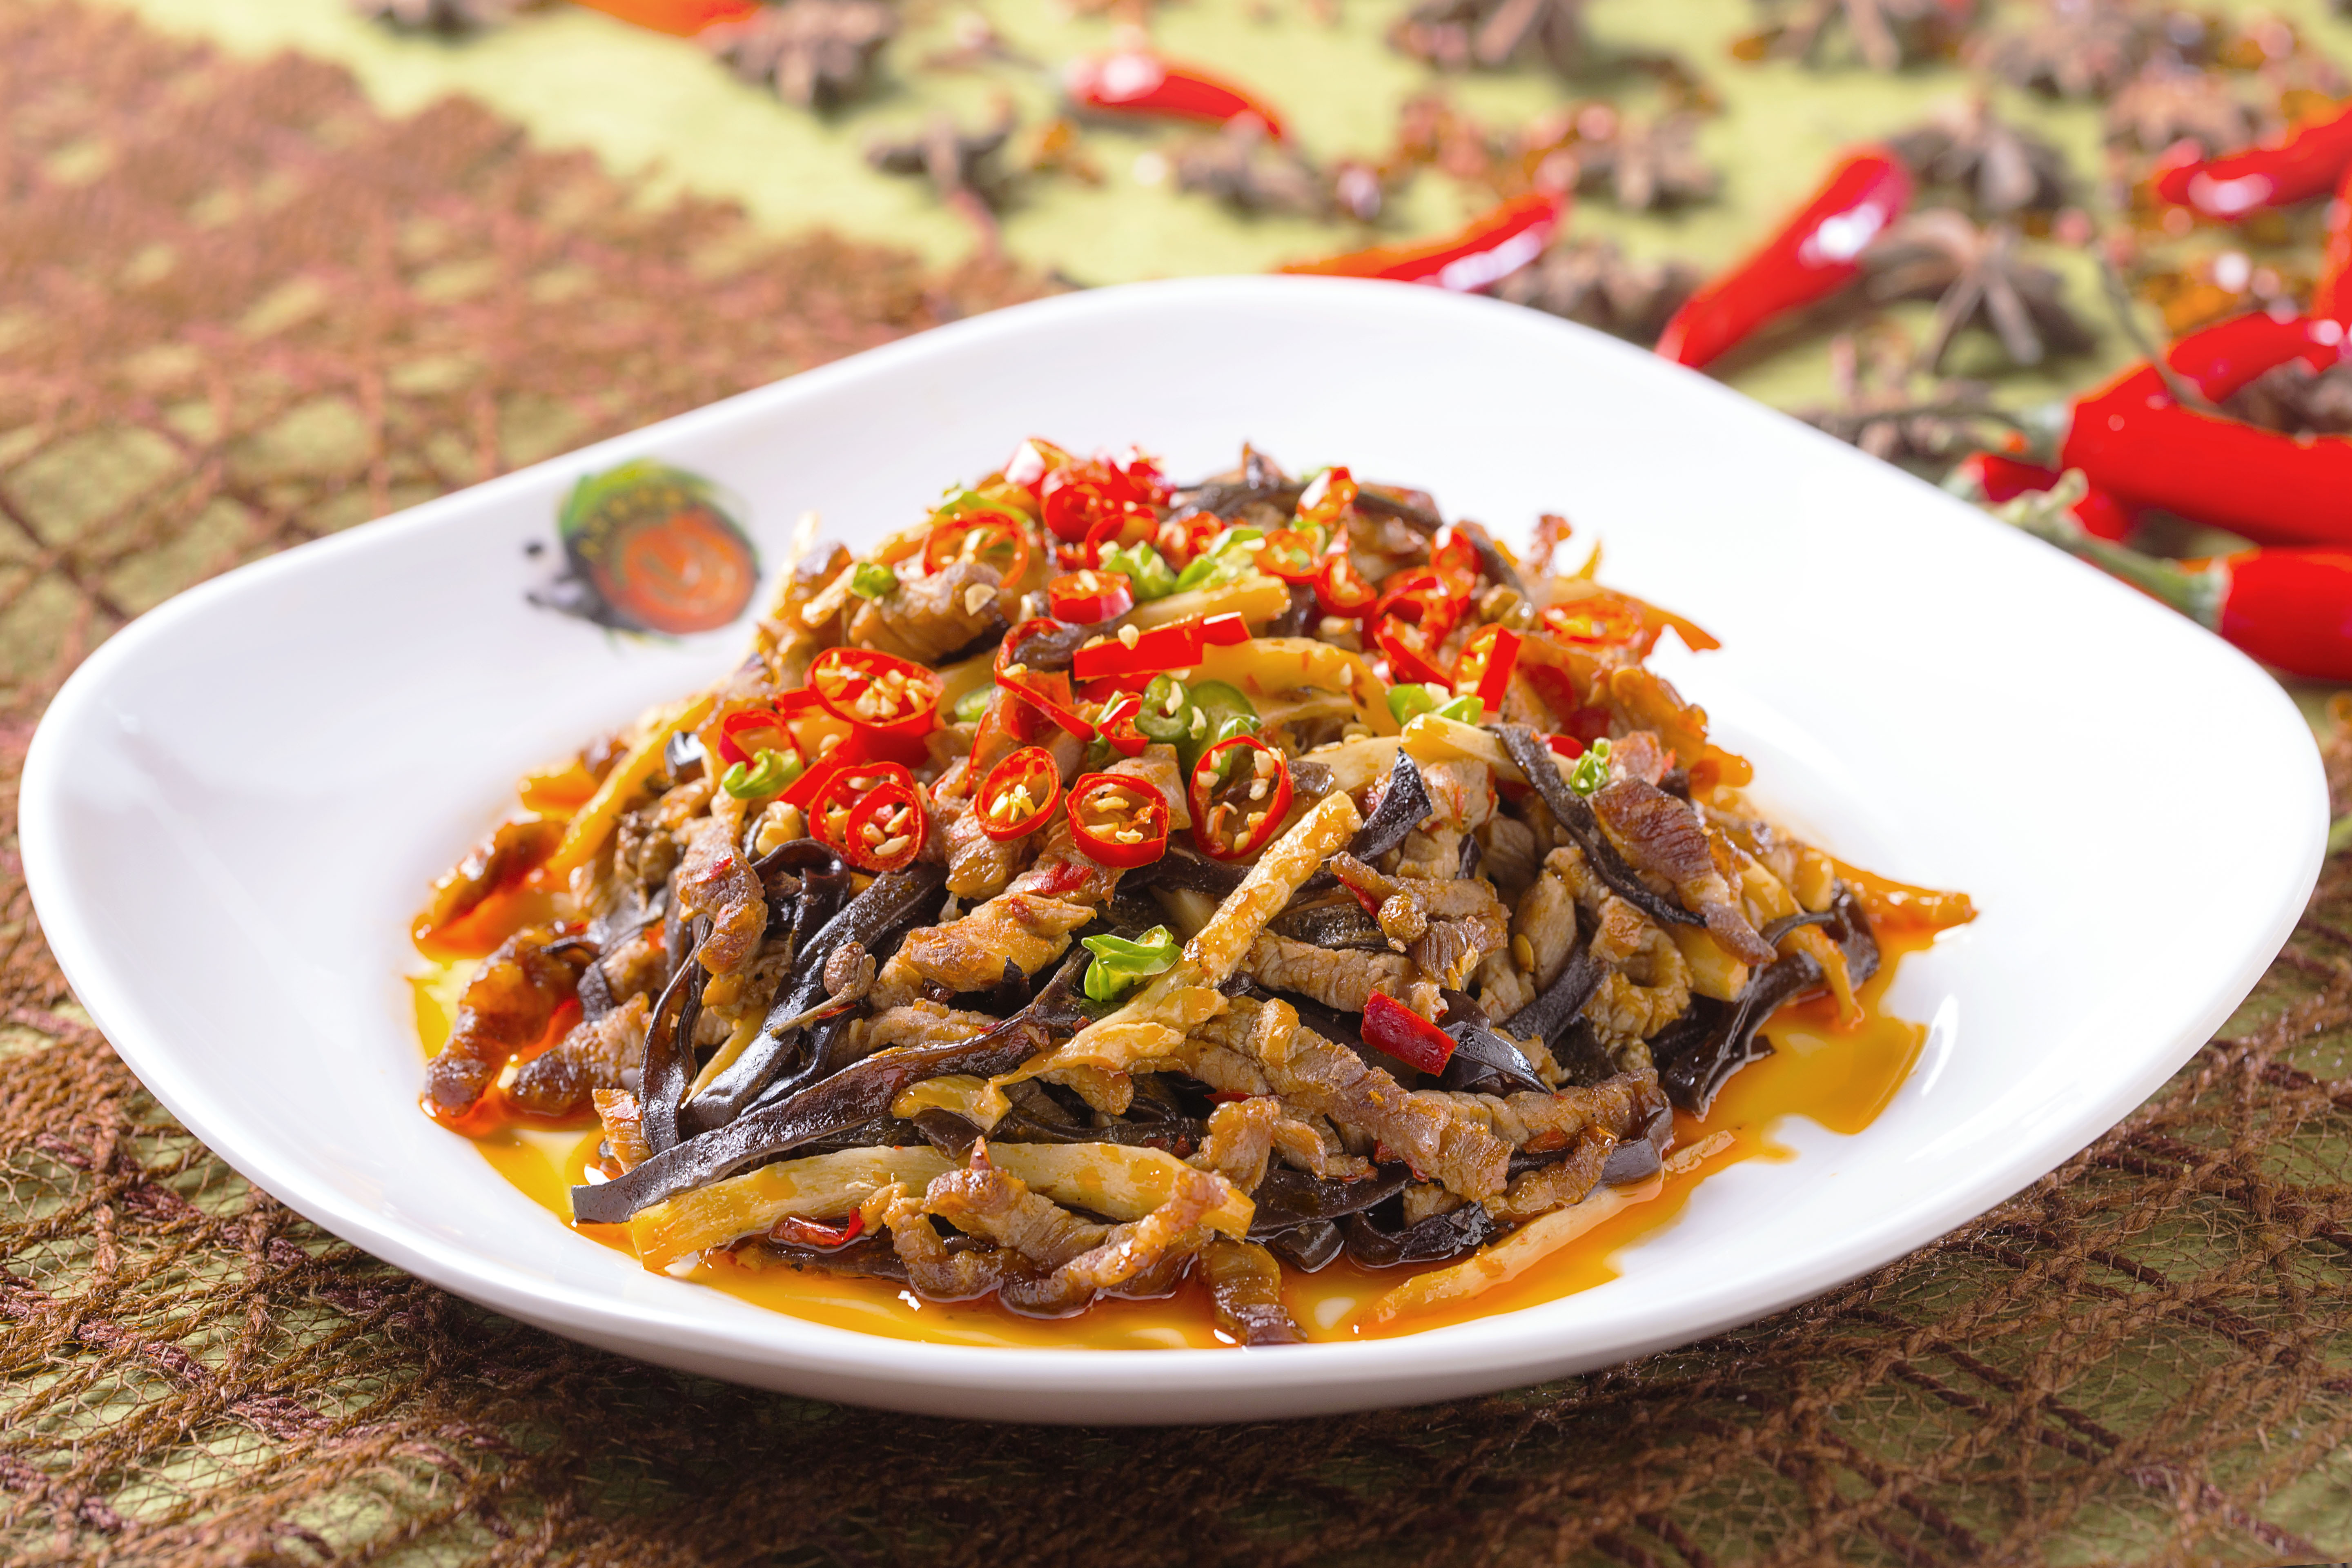 Sautéed Shredded Pork in Spicy and Chili Sauce